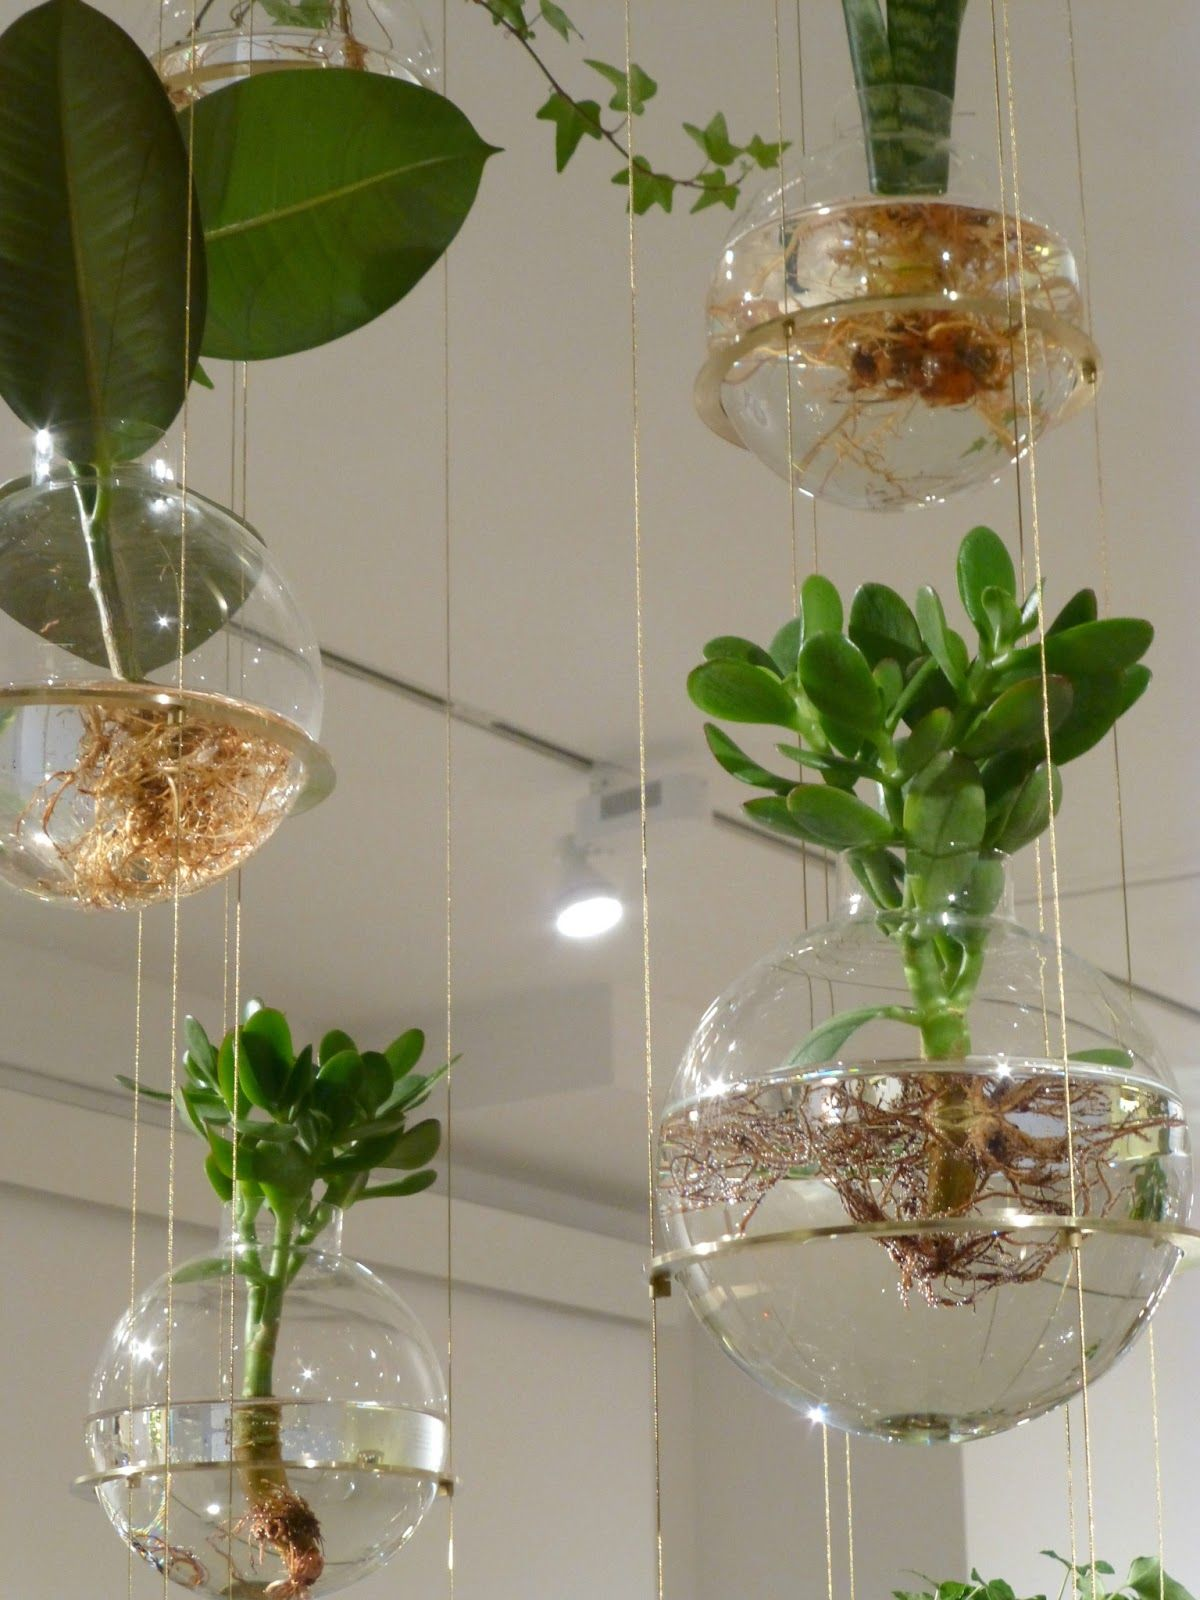 Cool Plants For Your Room Beautiful Hanging Plant Installation Michael Anastassiades